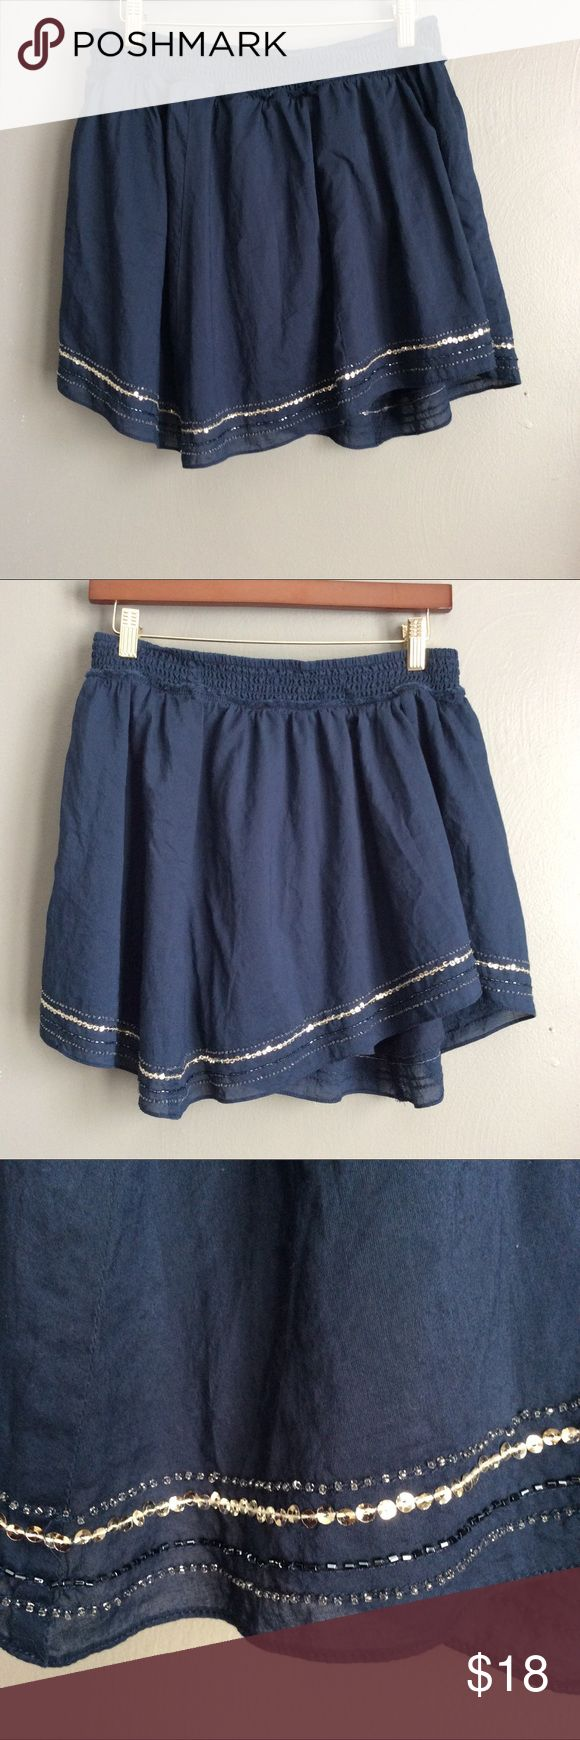 American Eagle Outfitters Skirt American Eagle outfitters skirt, size M. Feel free to make an offer. No trades. American Eagle Outfitters Skirts